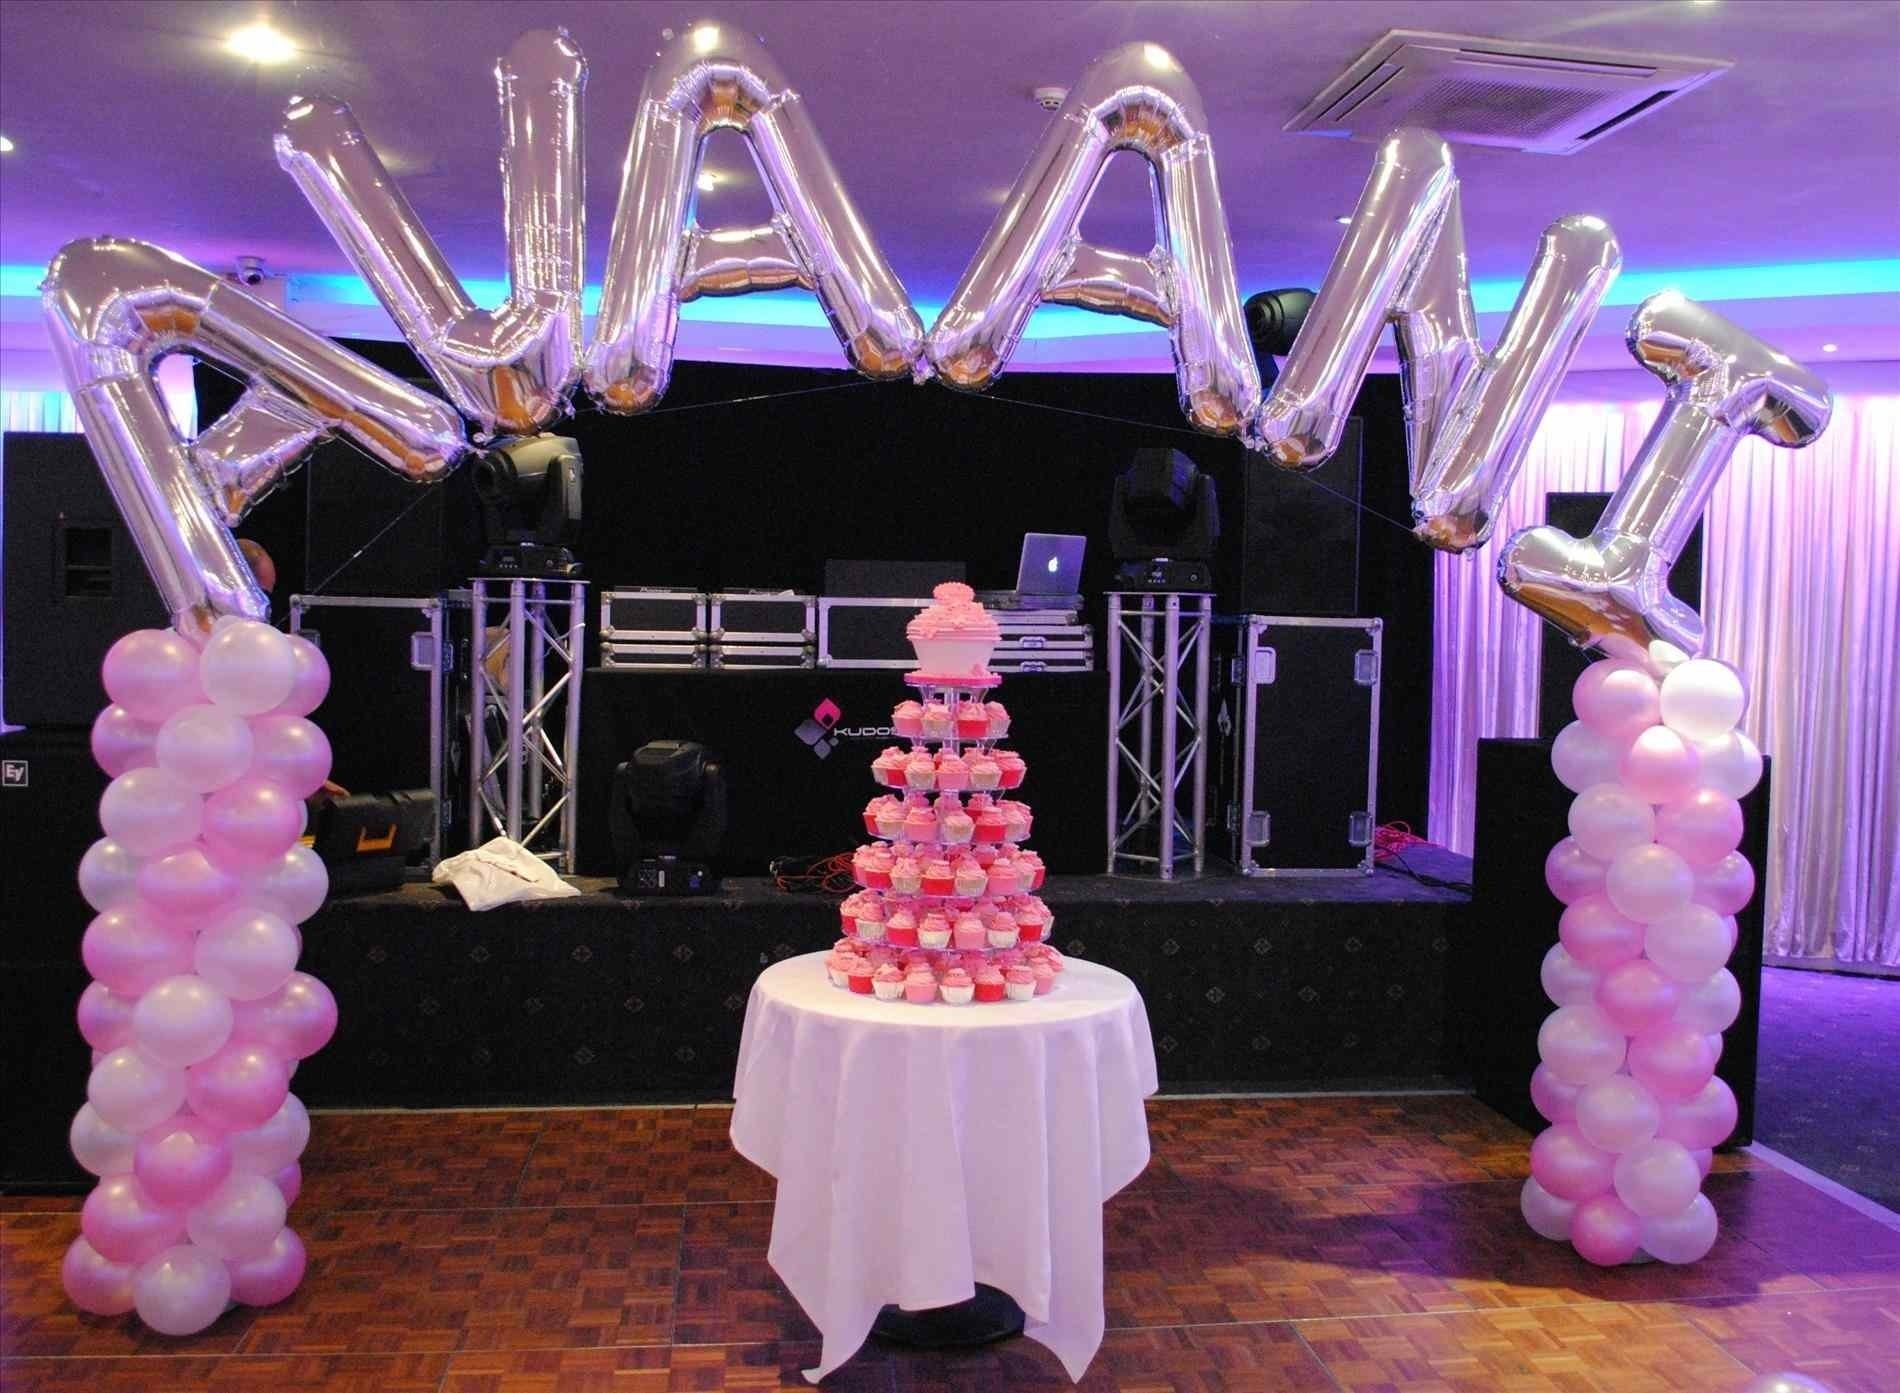 10 Amazing Party Ideas For 21St Birthday st surprise girlfriends pinterest st house party ideas for 21st 2021